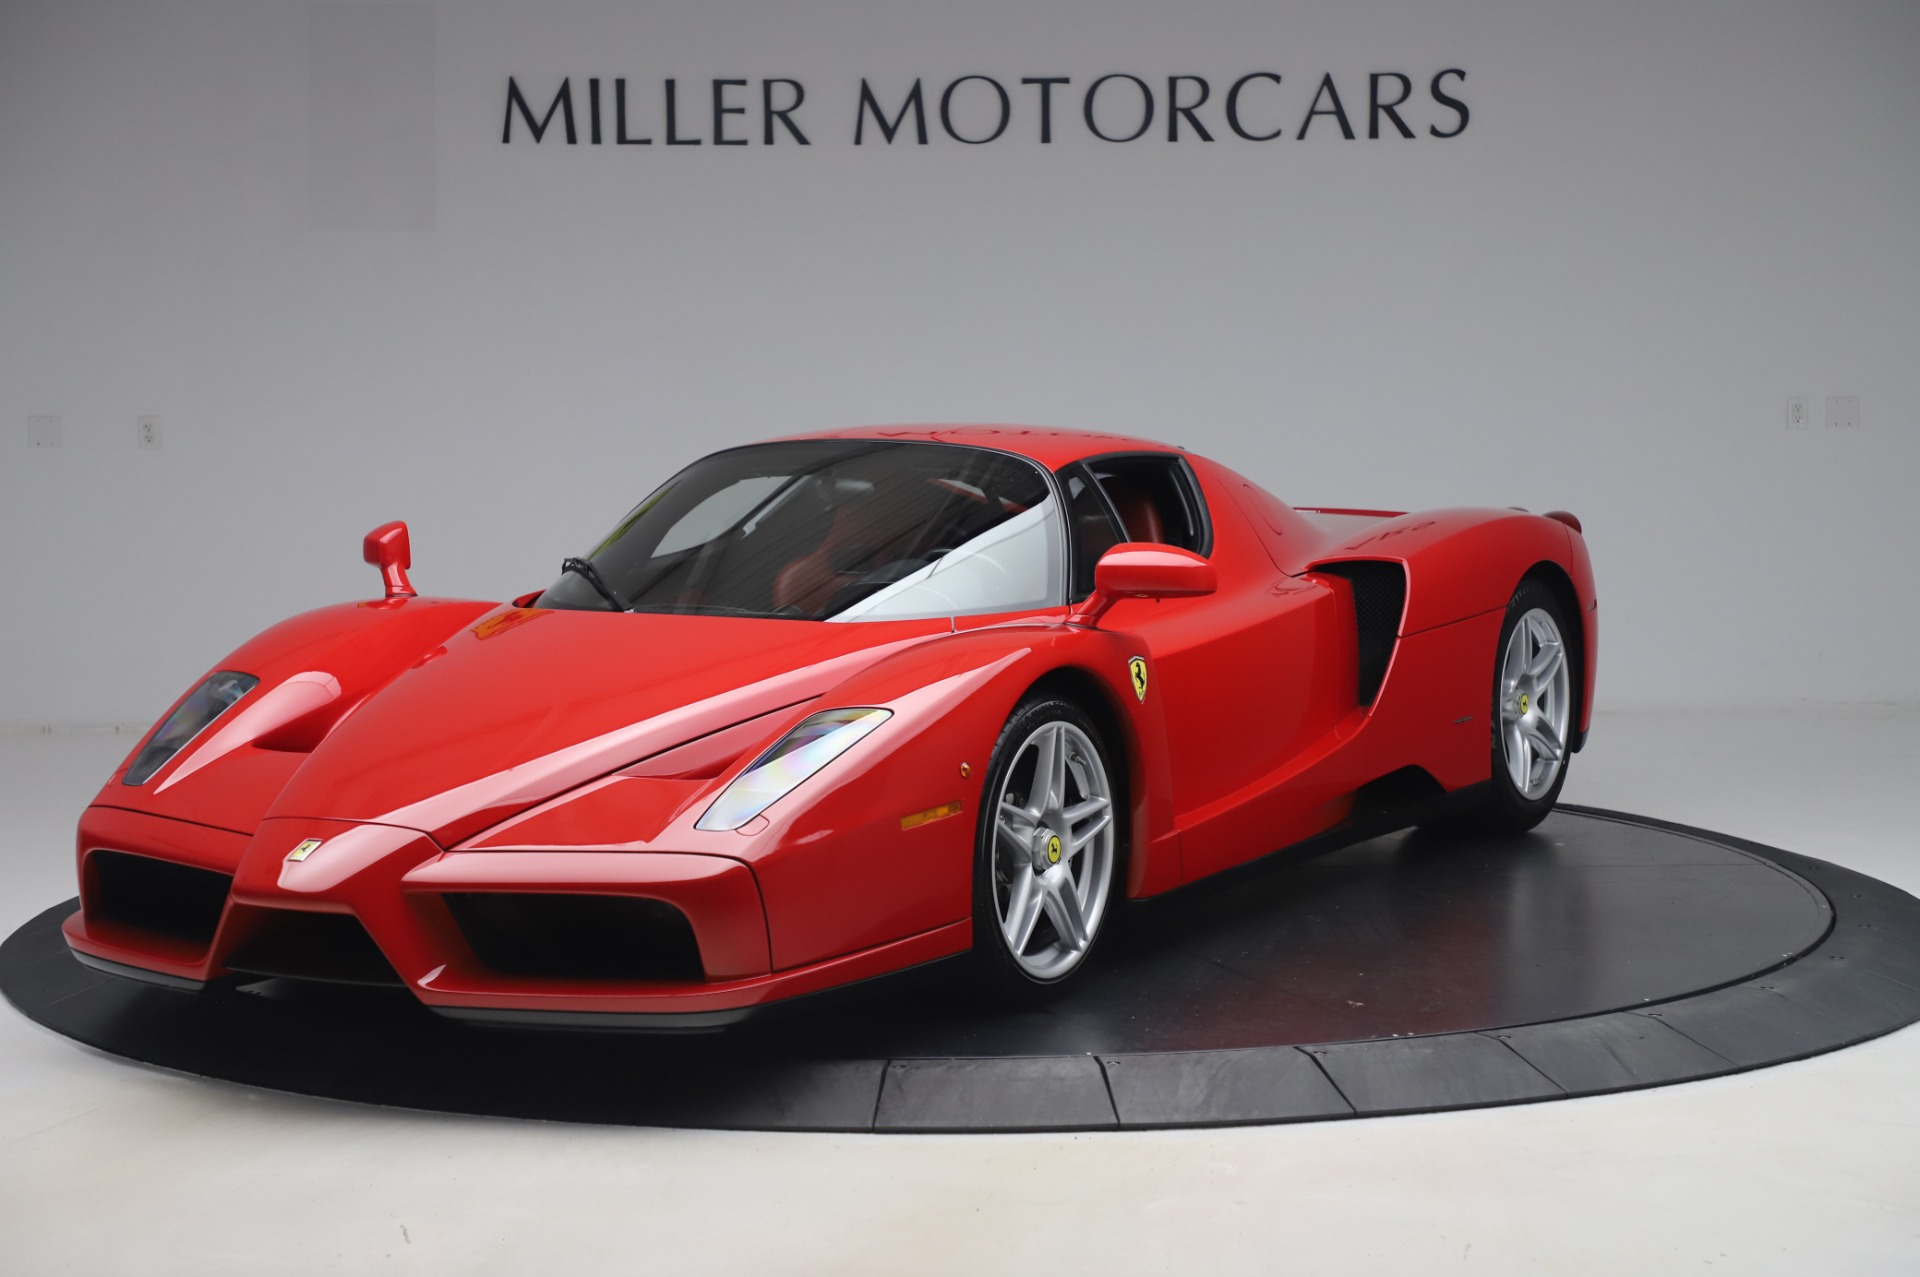 Used 2003 Ferrari Enzo for sale $2,995,000 at Alfa Romeo of Greenwich in Greenwich CT 06830 1